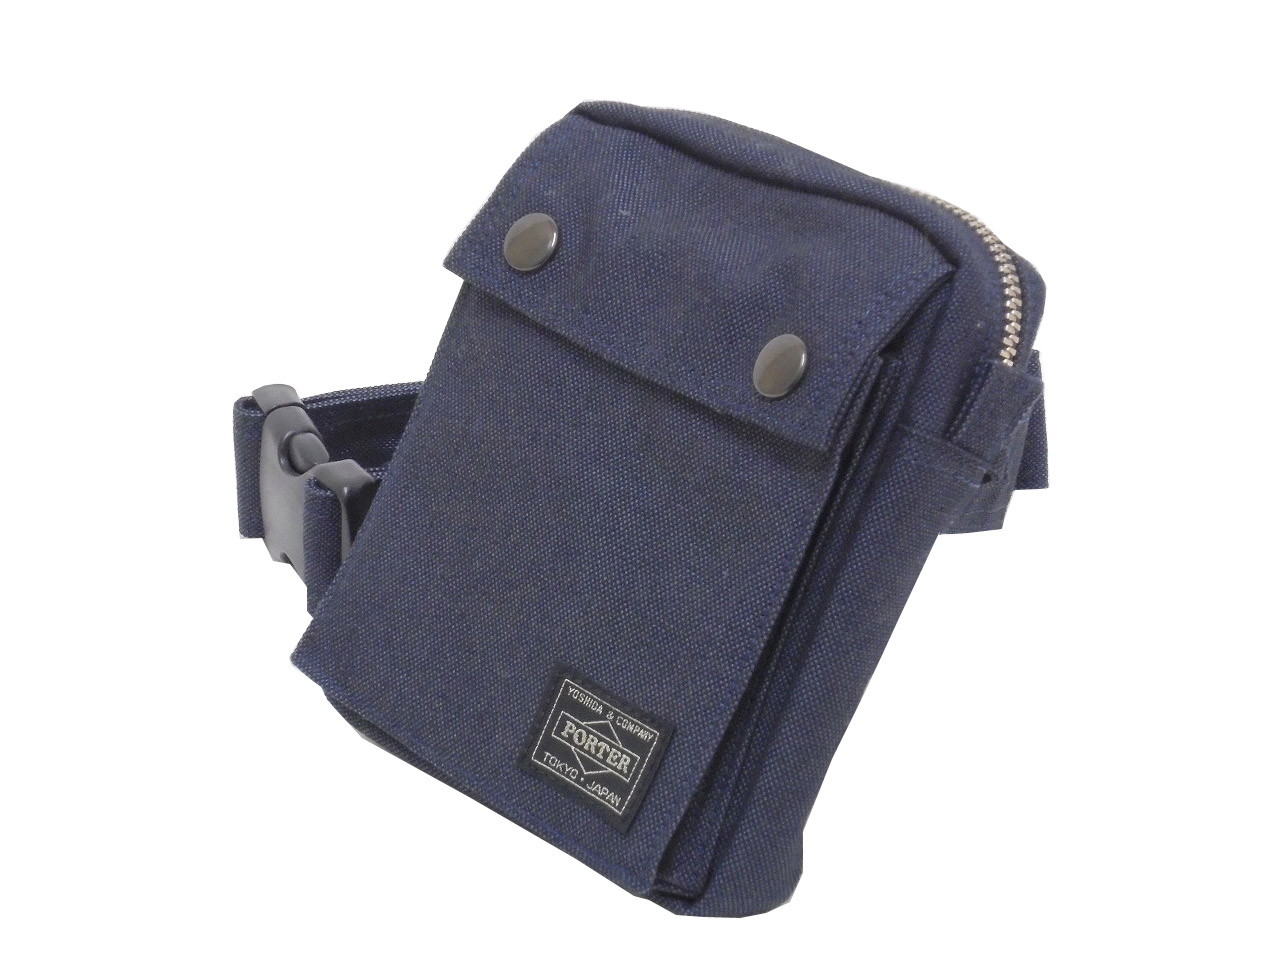 (Only in JAPAN.) 吉田カバン PORTER SMOKY ポーター スモーキー ウエストバッグ 592-07508 (This product is not for overseas customer.)